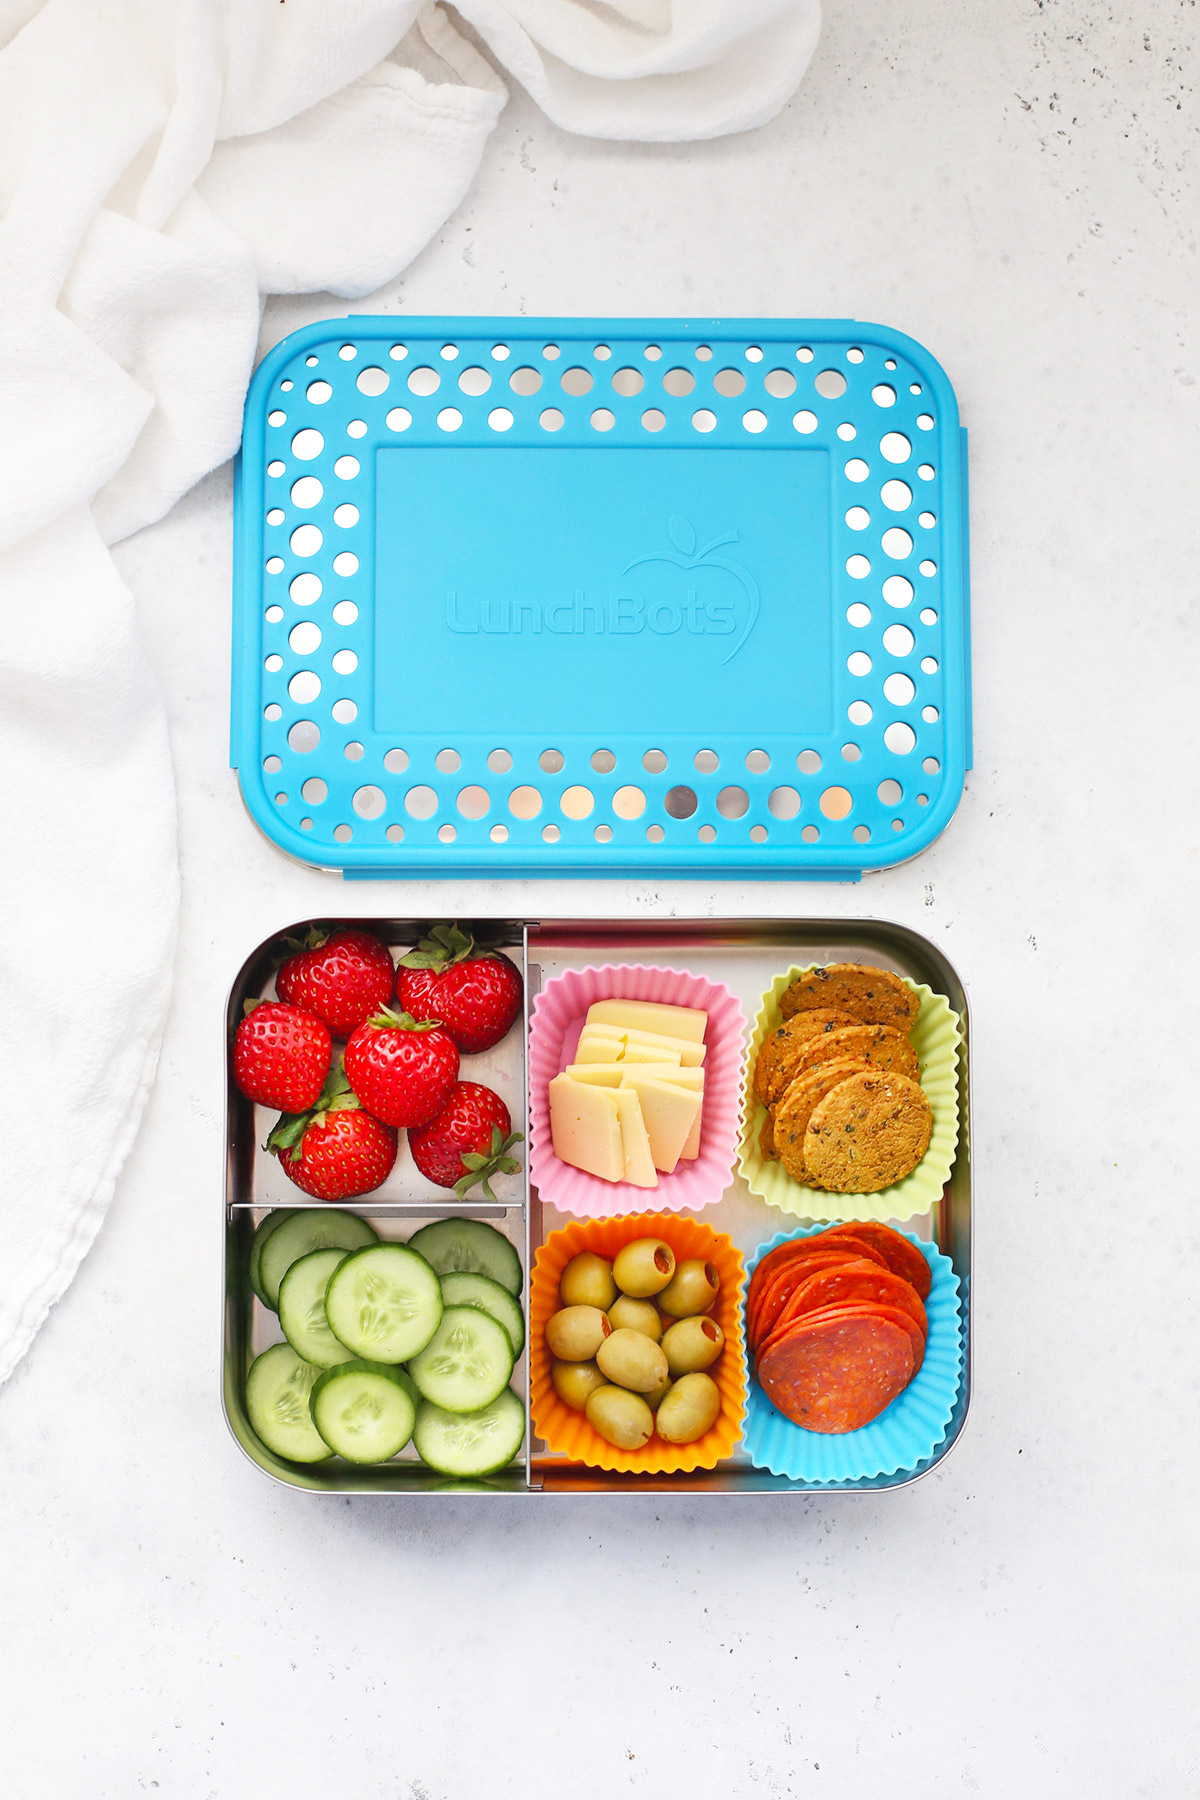 Lunchbots stainless steel large lunch box with strawberries, dairy-free cheese, gluten-free crackers, pepperoni, green olives, and cucumbers